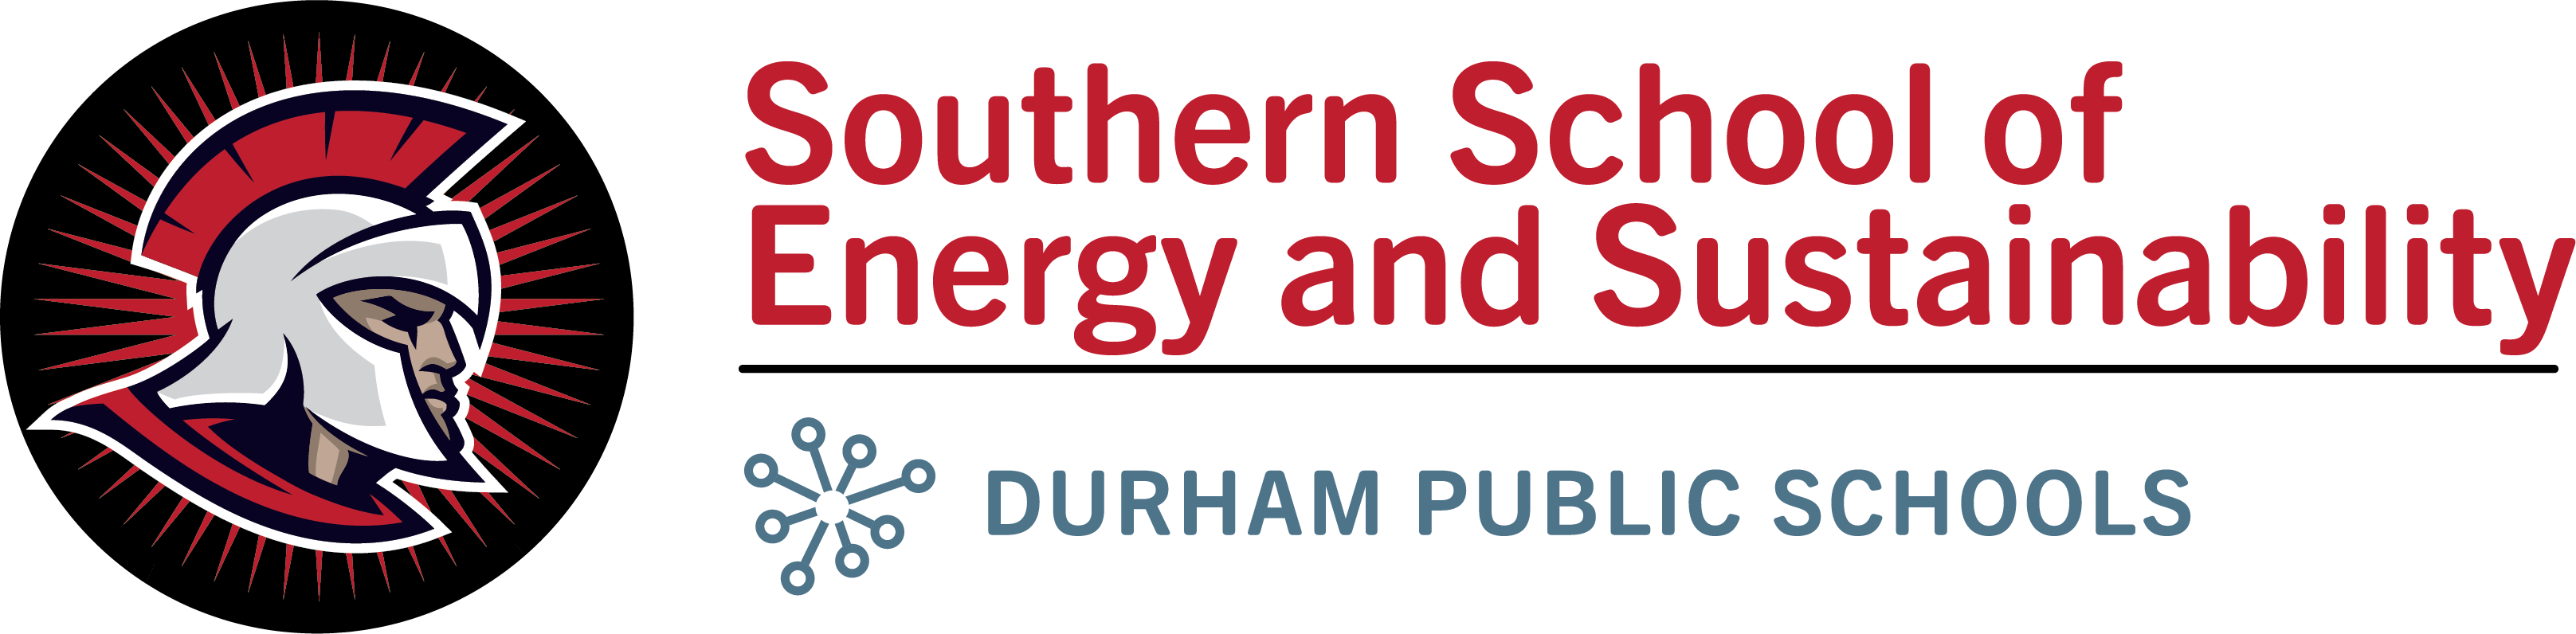 Southern School Of Energy And Sustainability Homepage